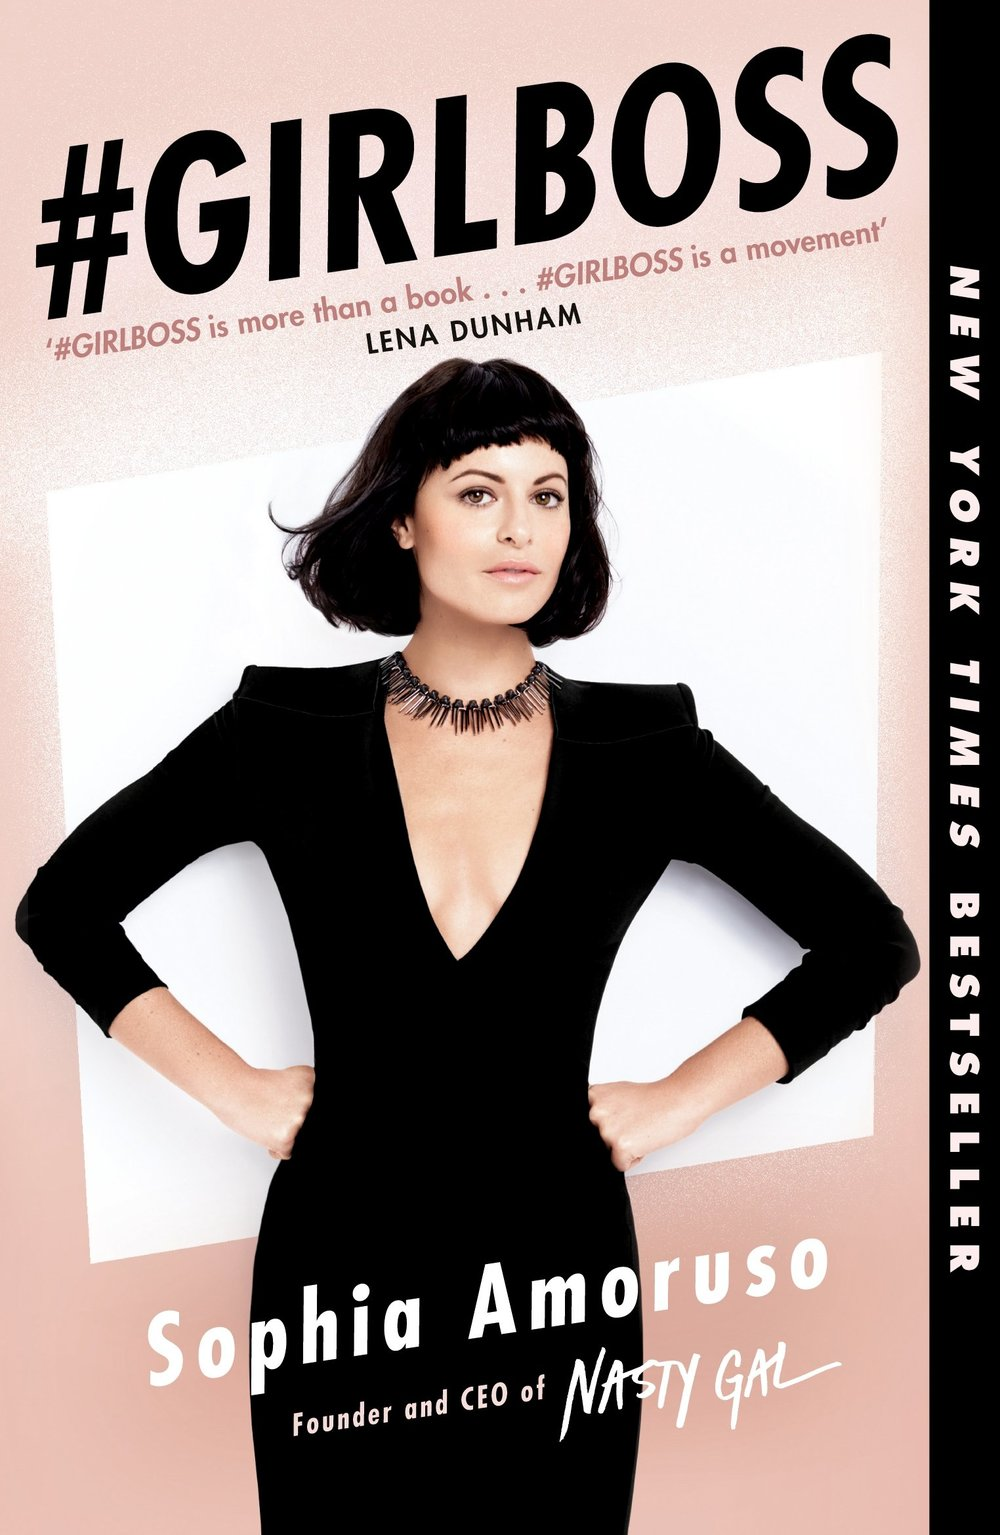 Inspiring Memoirs For Women - GIRLBOSS by Sophia Amoruso